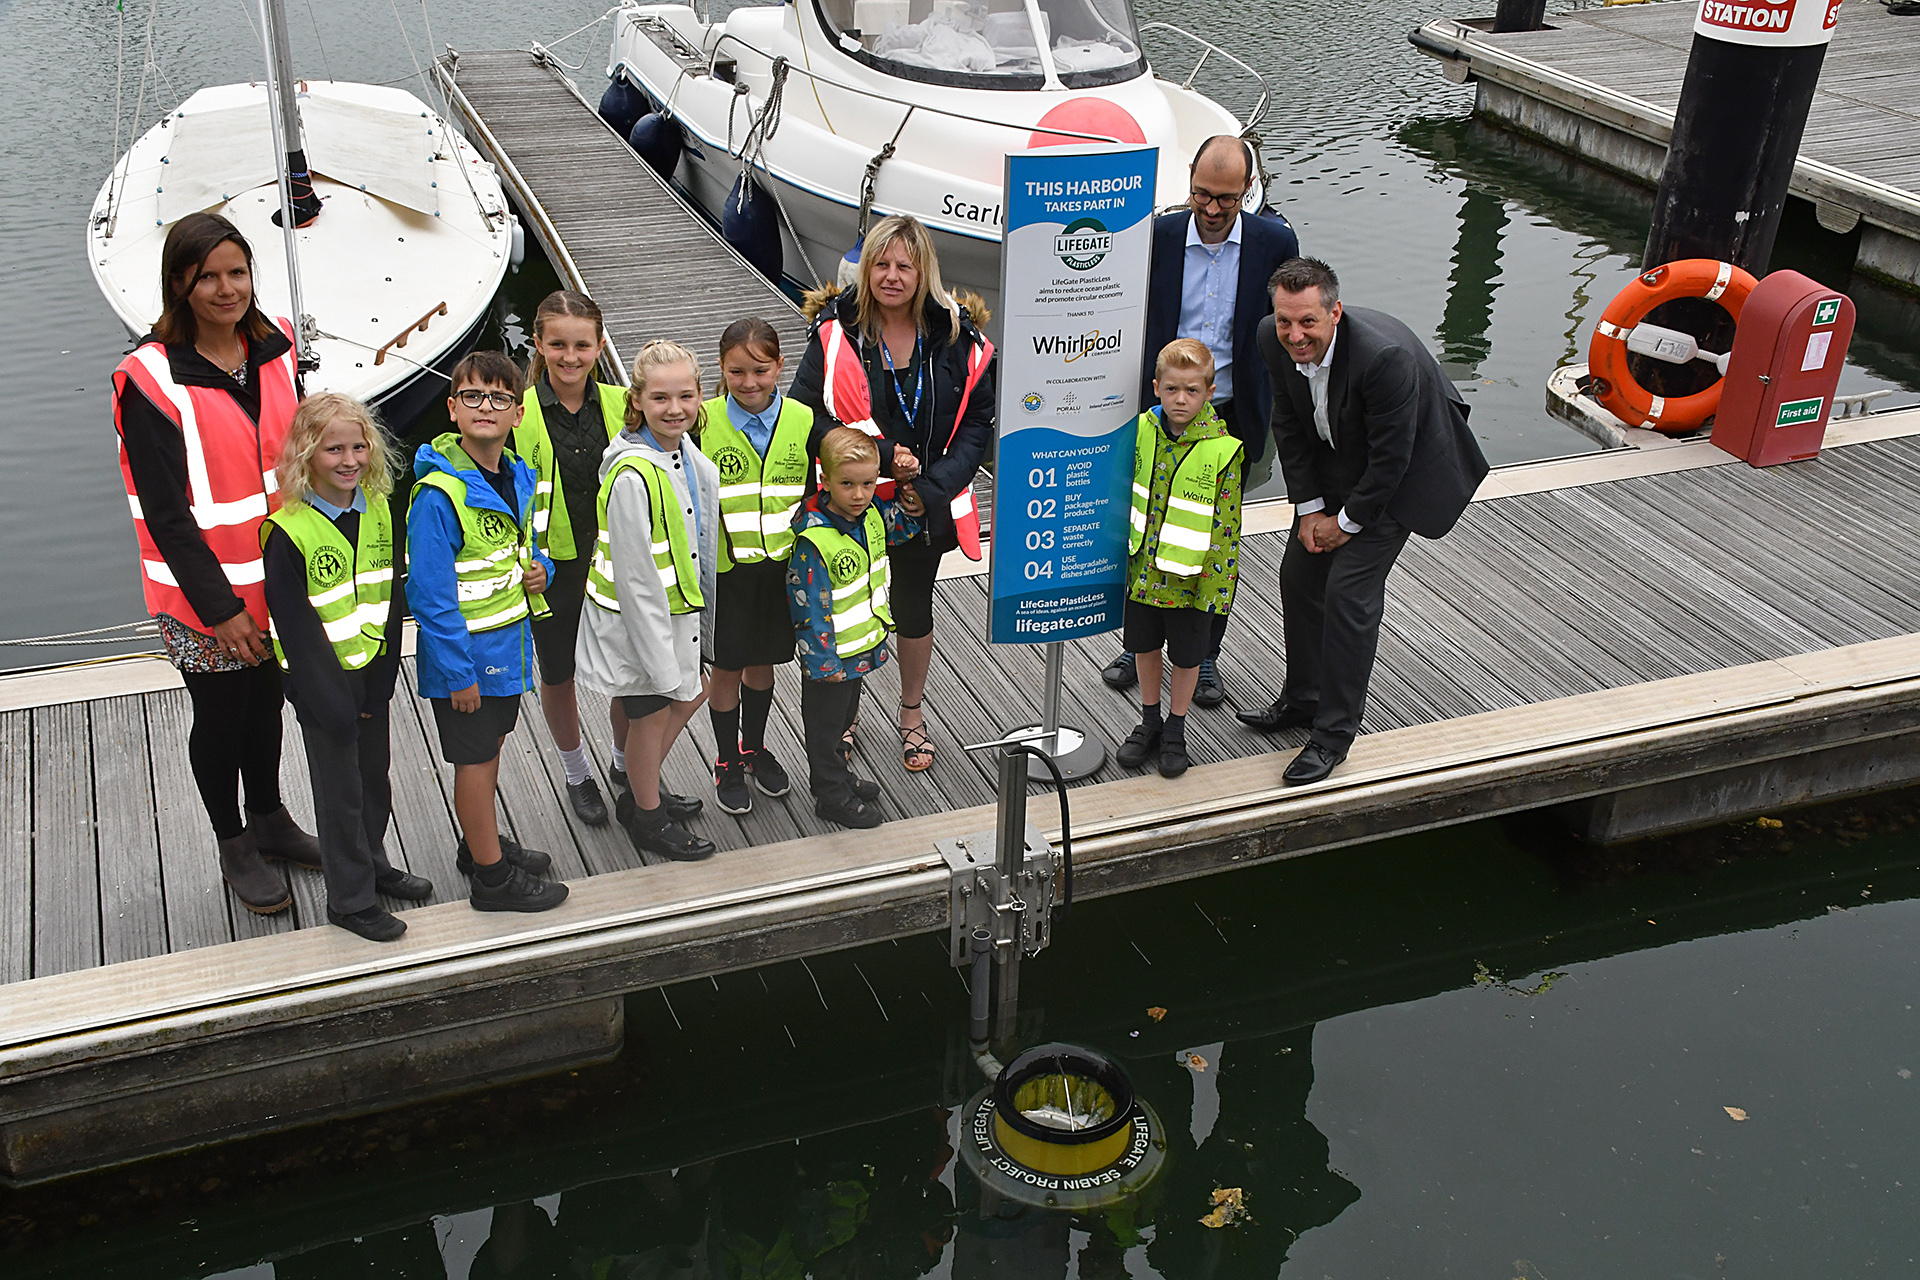 Whirlpool EMEA installs Seabin in the UK under Lifegate Plasticless campaign